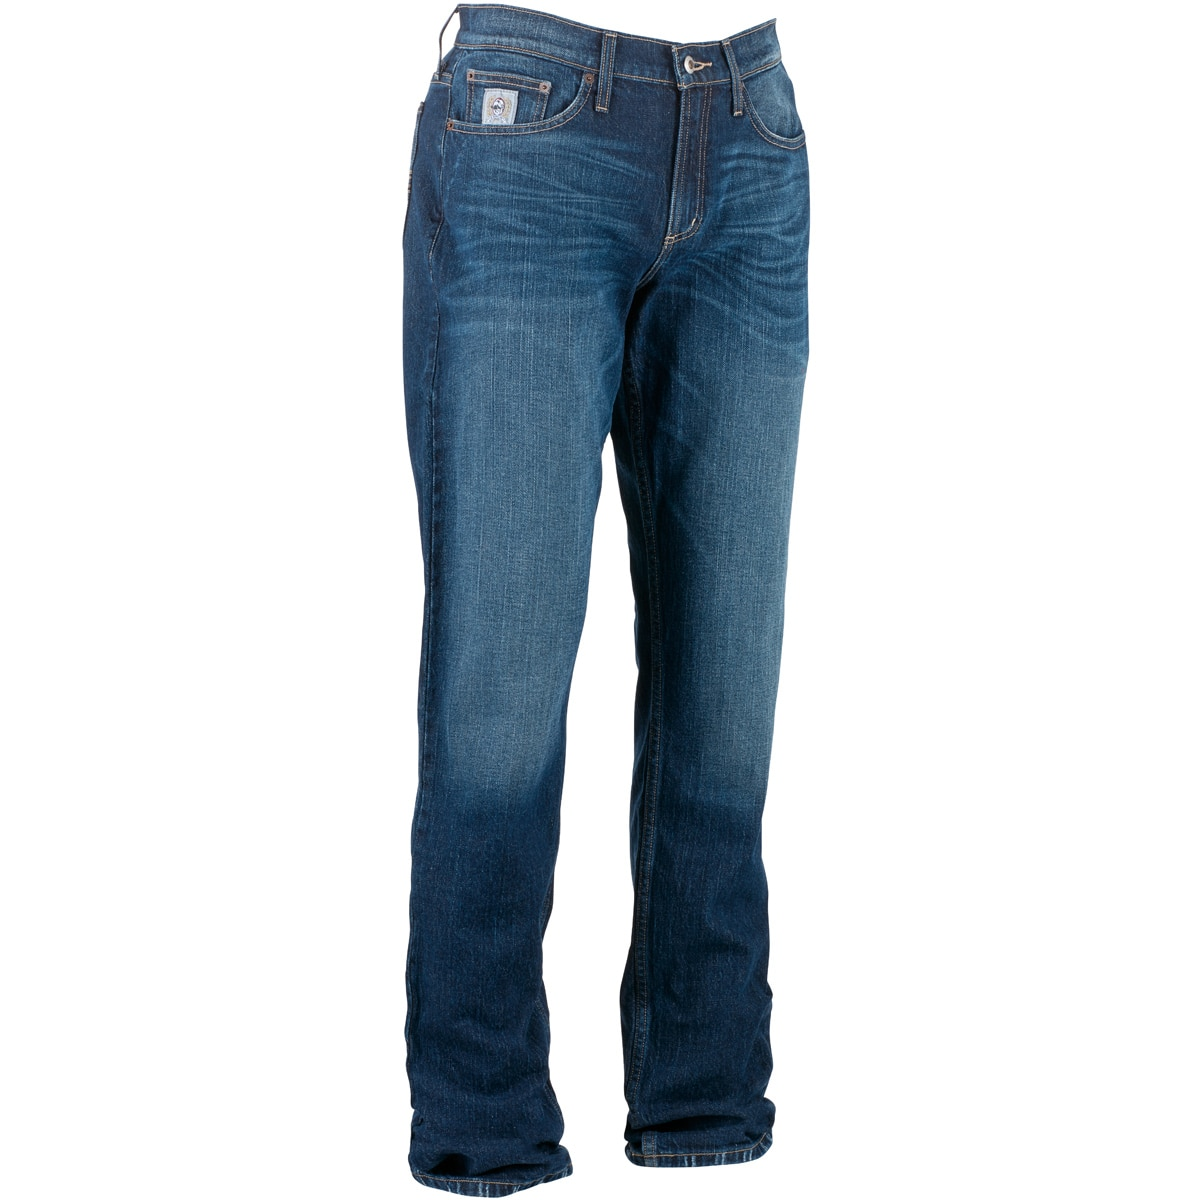 f485a932 Cinch Men's Silver Label Mid Rise Slim Bootcut Jeans